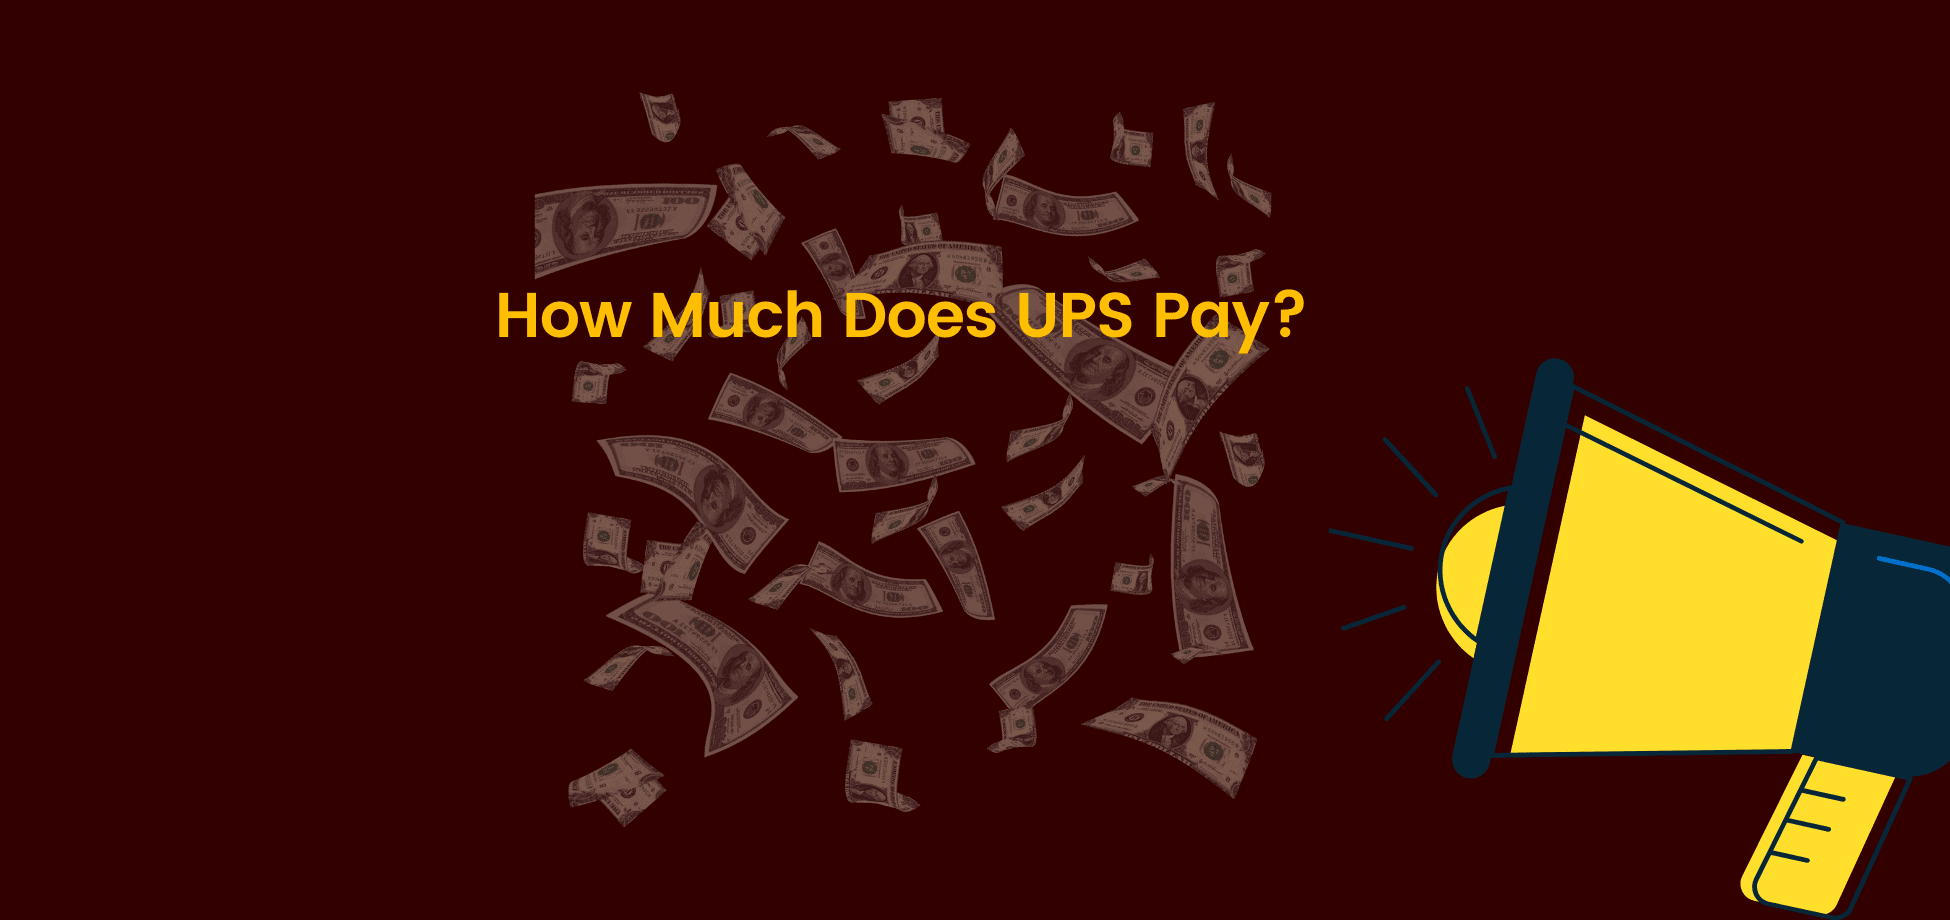 How much does UPS pay its employees?